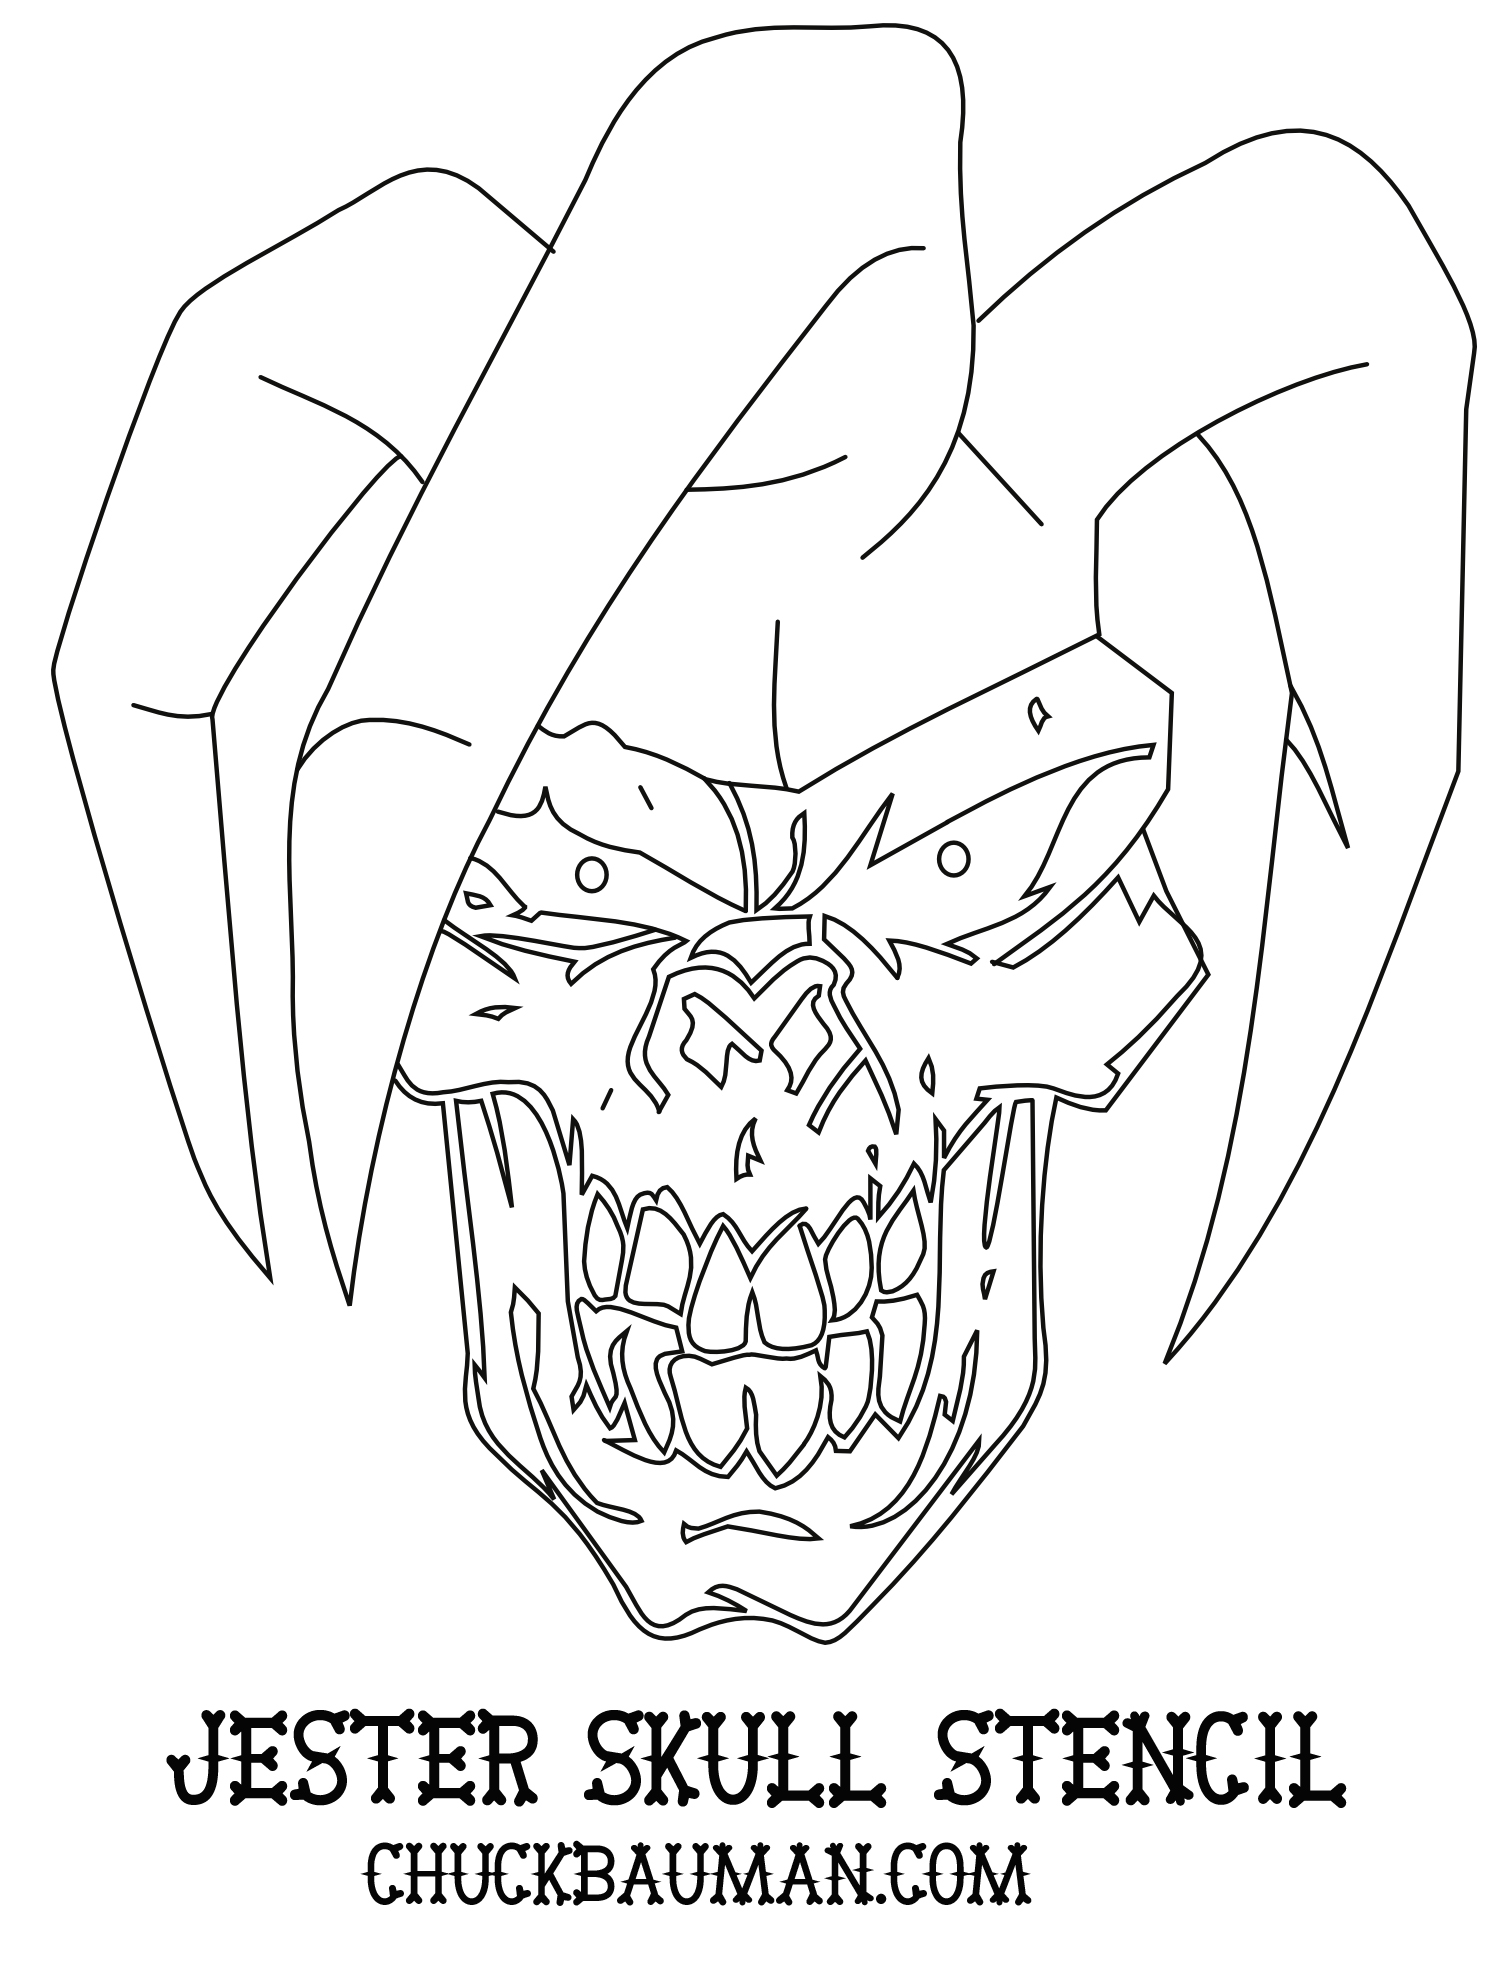 Airbrush Skull Jester Stencil by crb1177